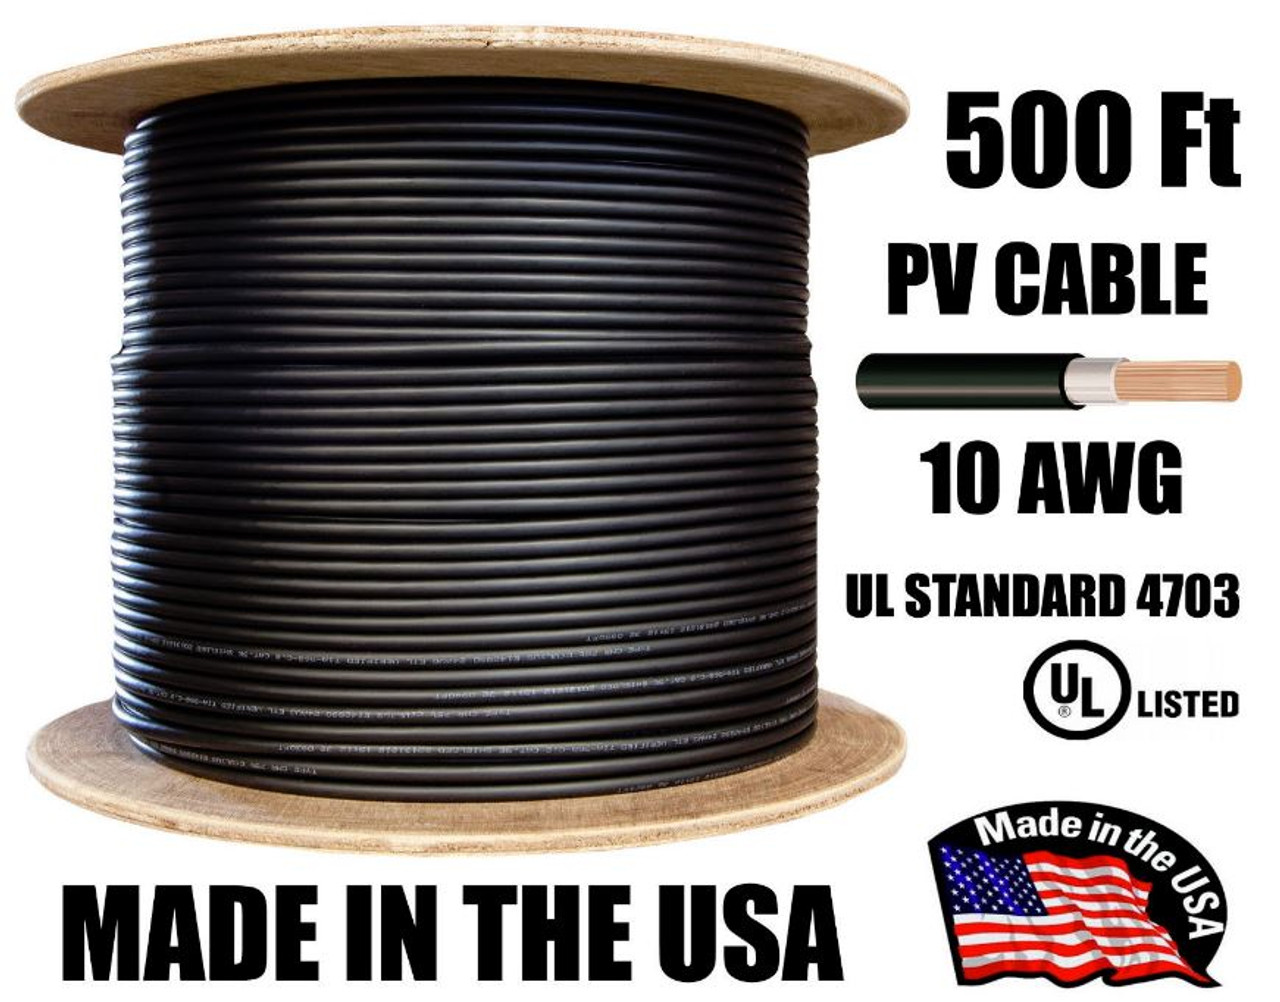 500 Ft Spool of 10 AWG 1000V Double Jacket PV Cable Black